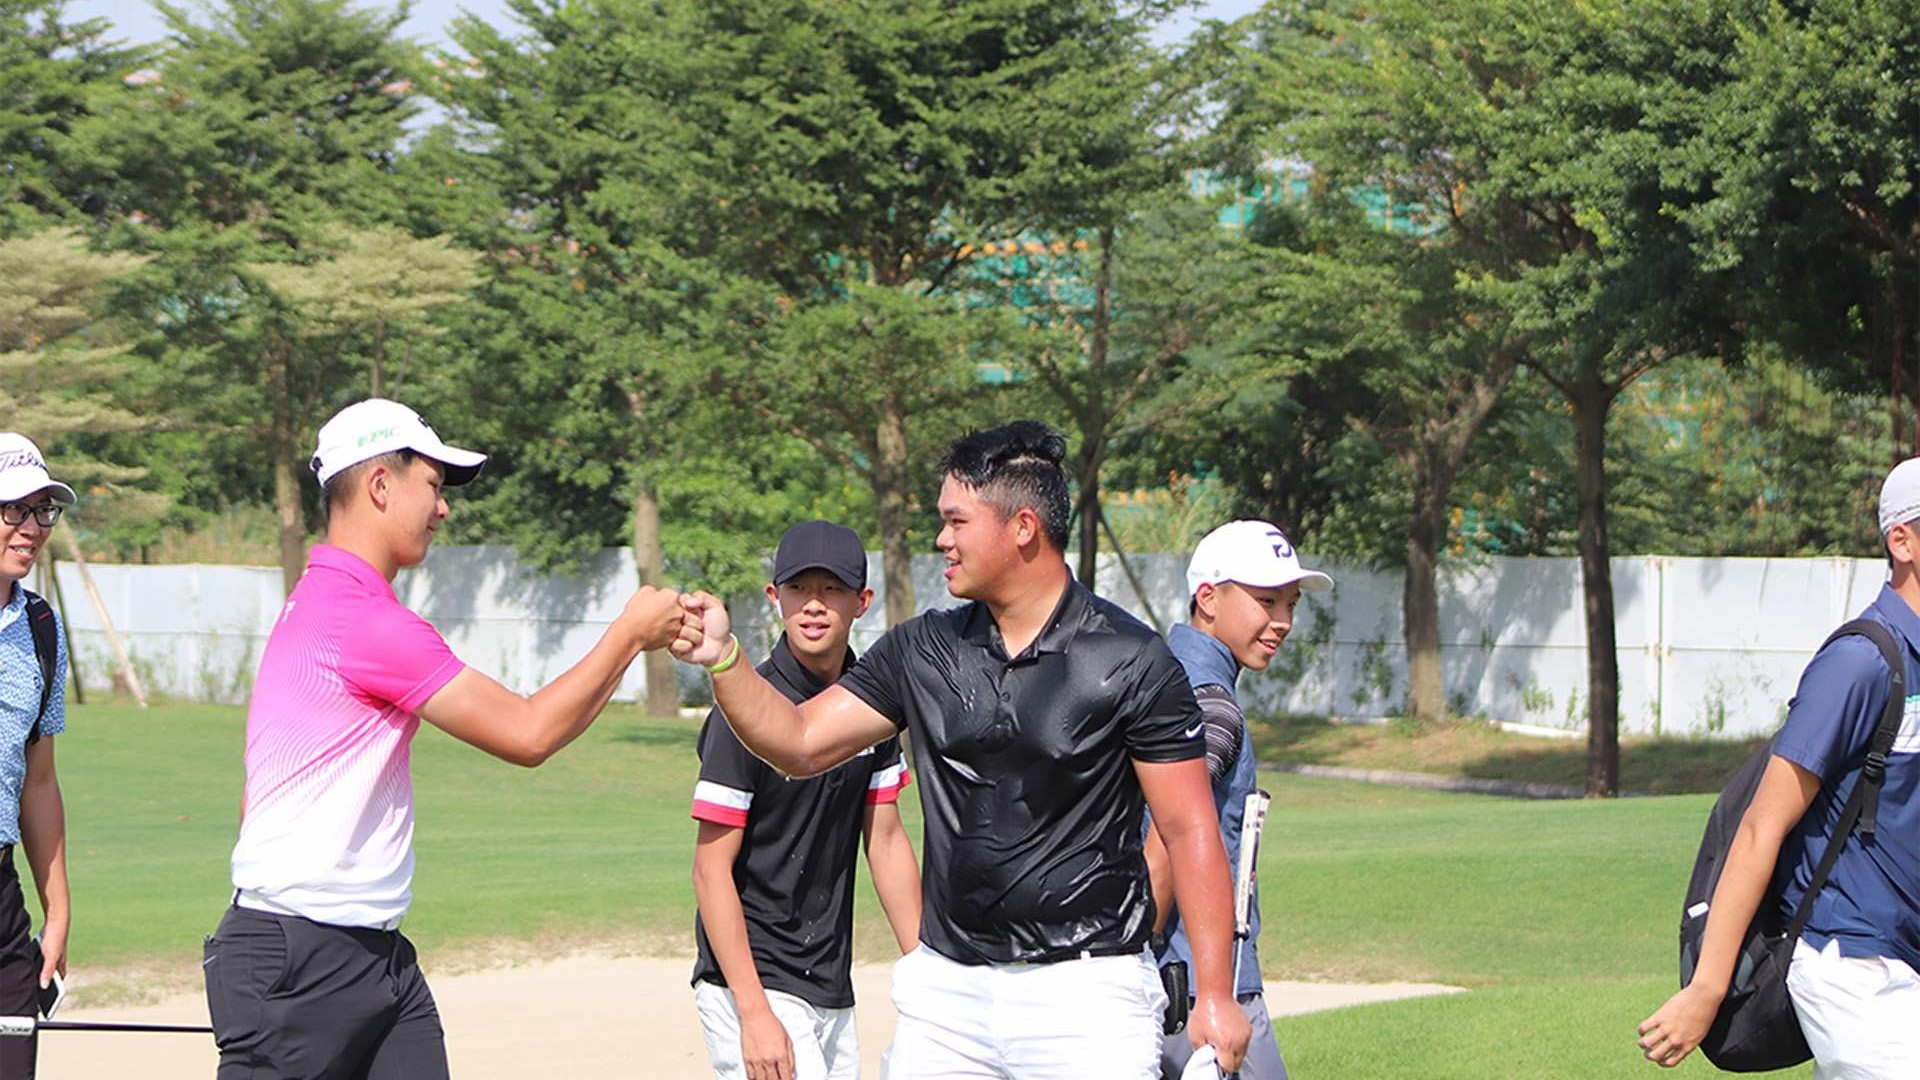 Tickets Punched for Jui-Shen Lee after winning in a sudden death playoff at The Southern Junior